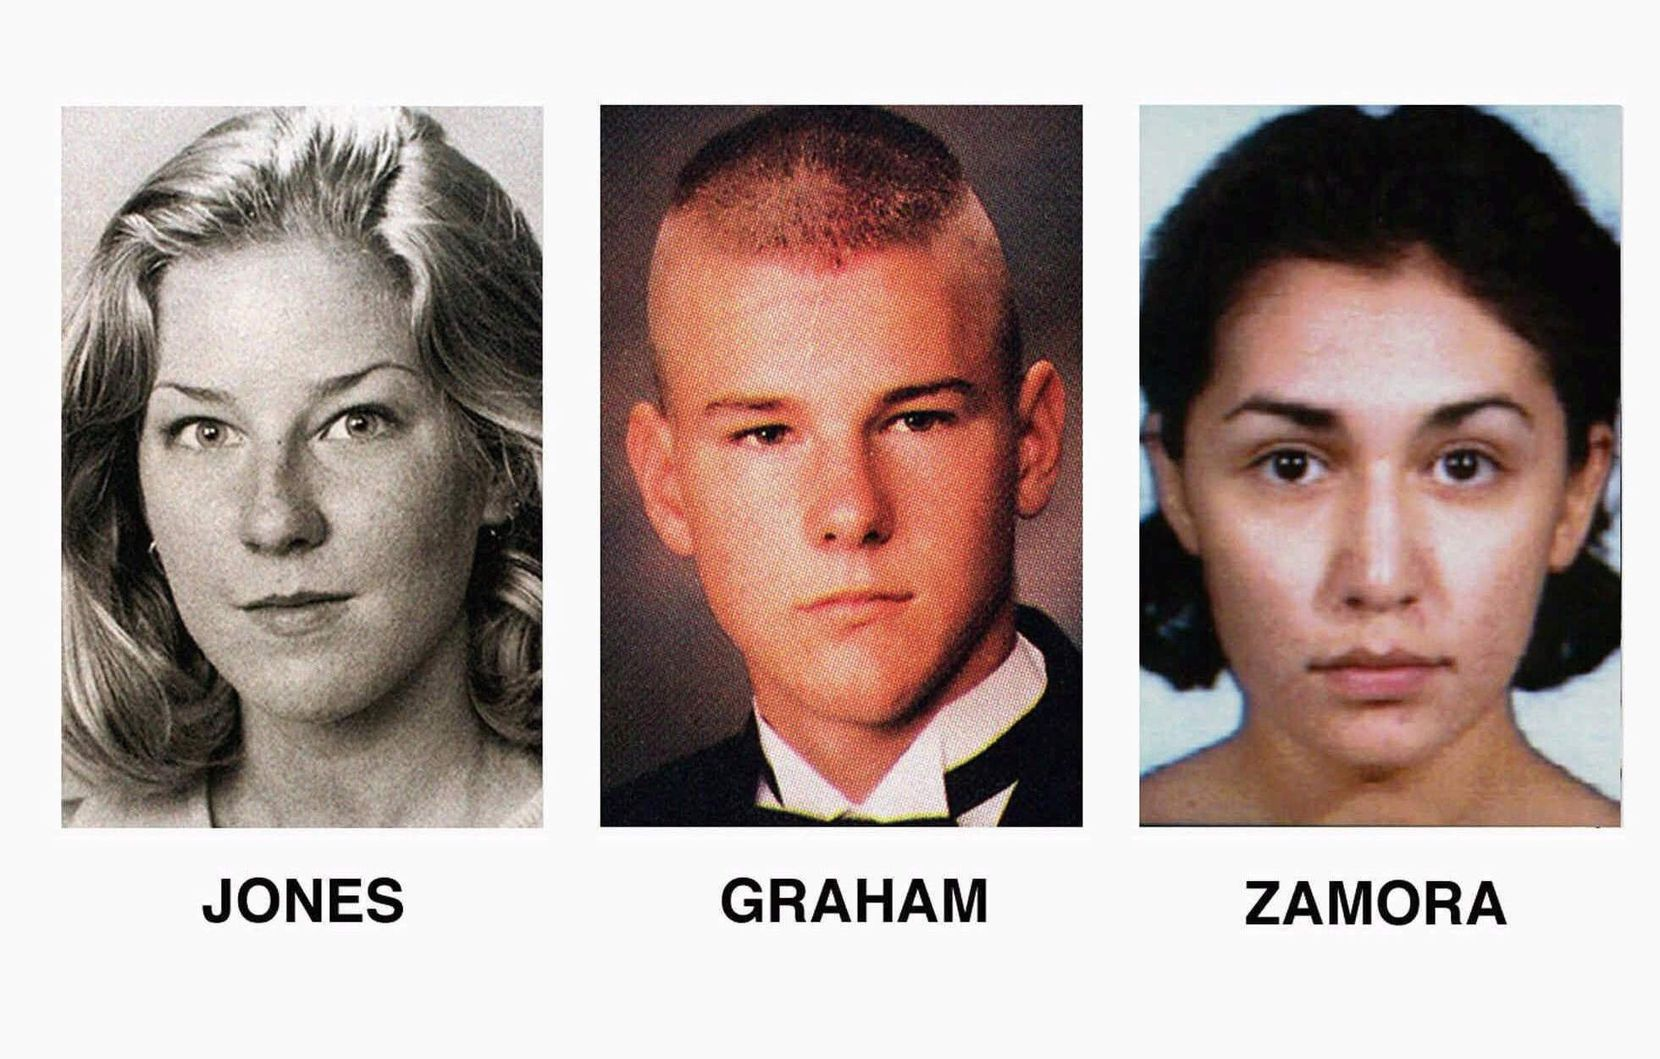 Adrianne Jones (left), David Graham and Diane Zamora, 18. The Jones and Graham photos are from the 1996 Mansfield HIgh School yearbook. Zamora is seen in a 1996 booking photo following her arrest in Jones' death.